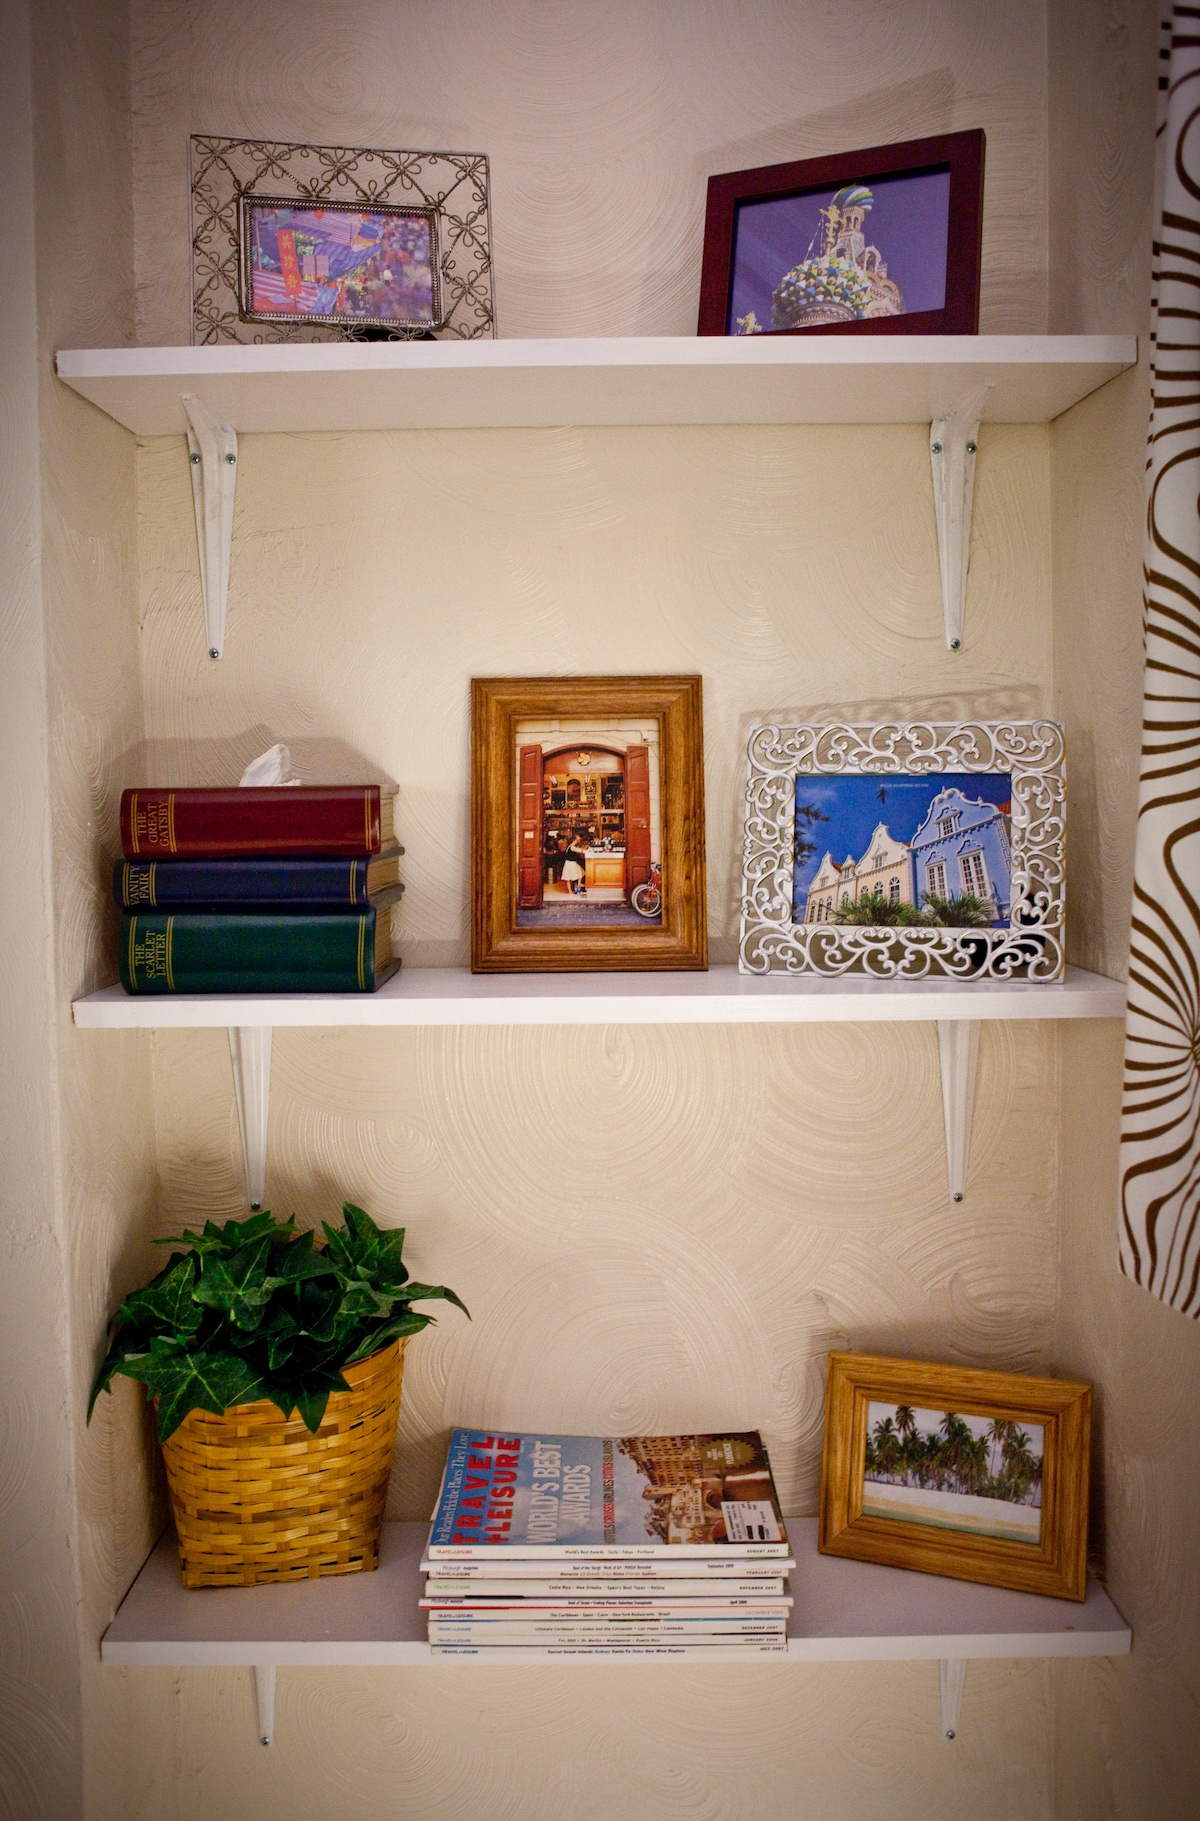 Built-in bookshelves feature photos from iconic destinations.